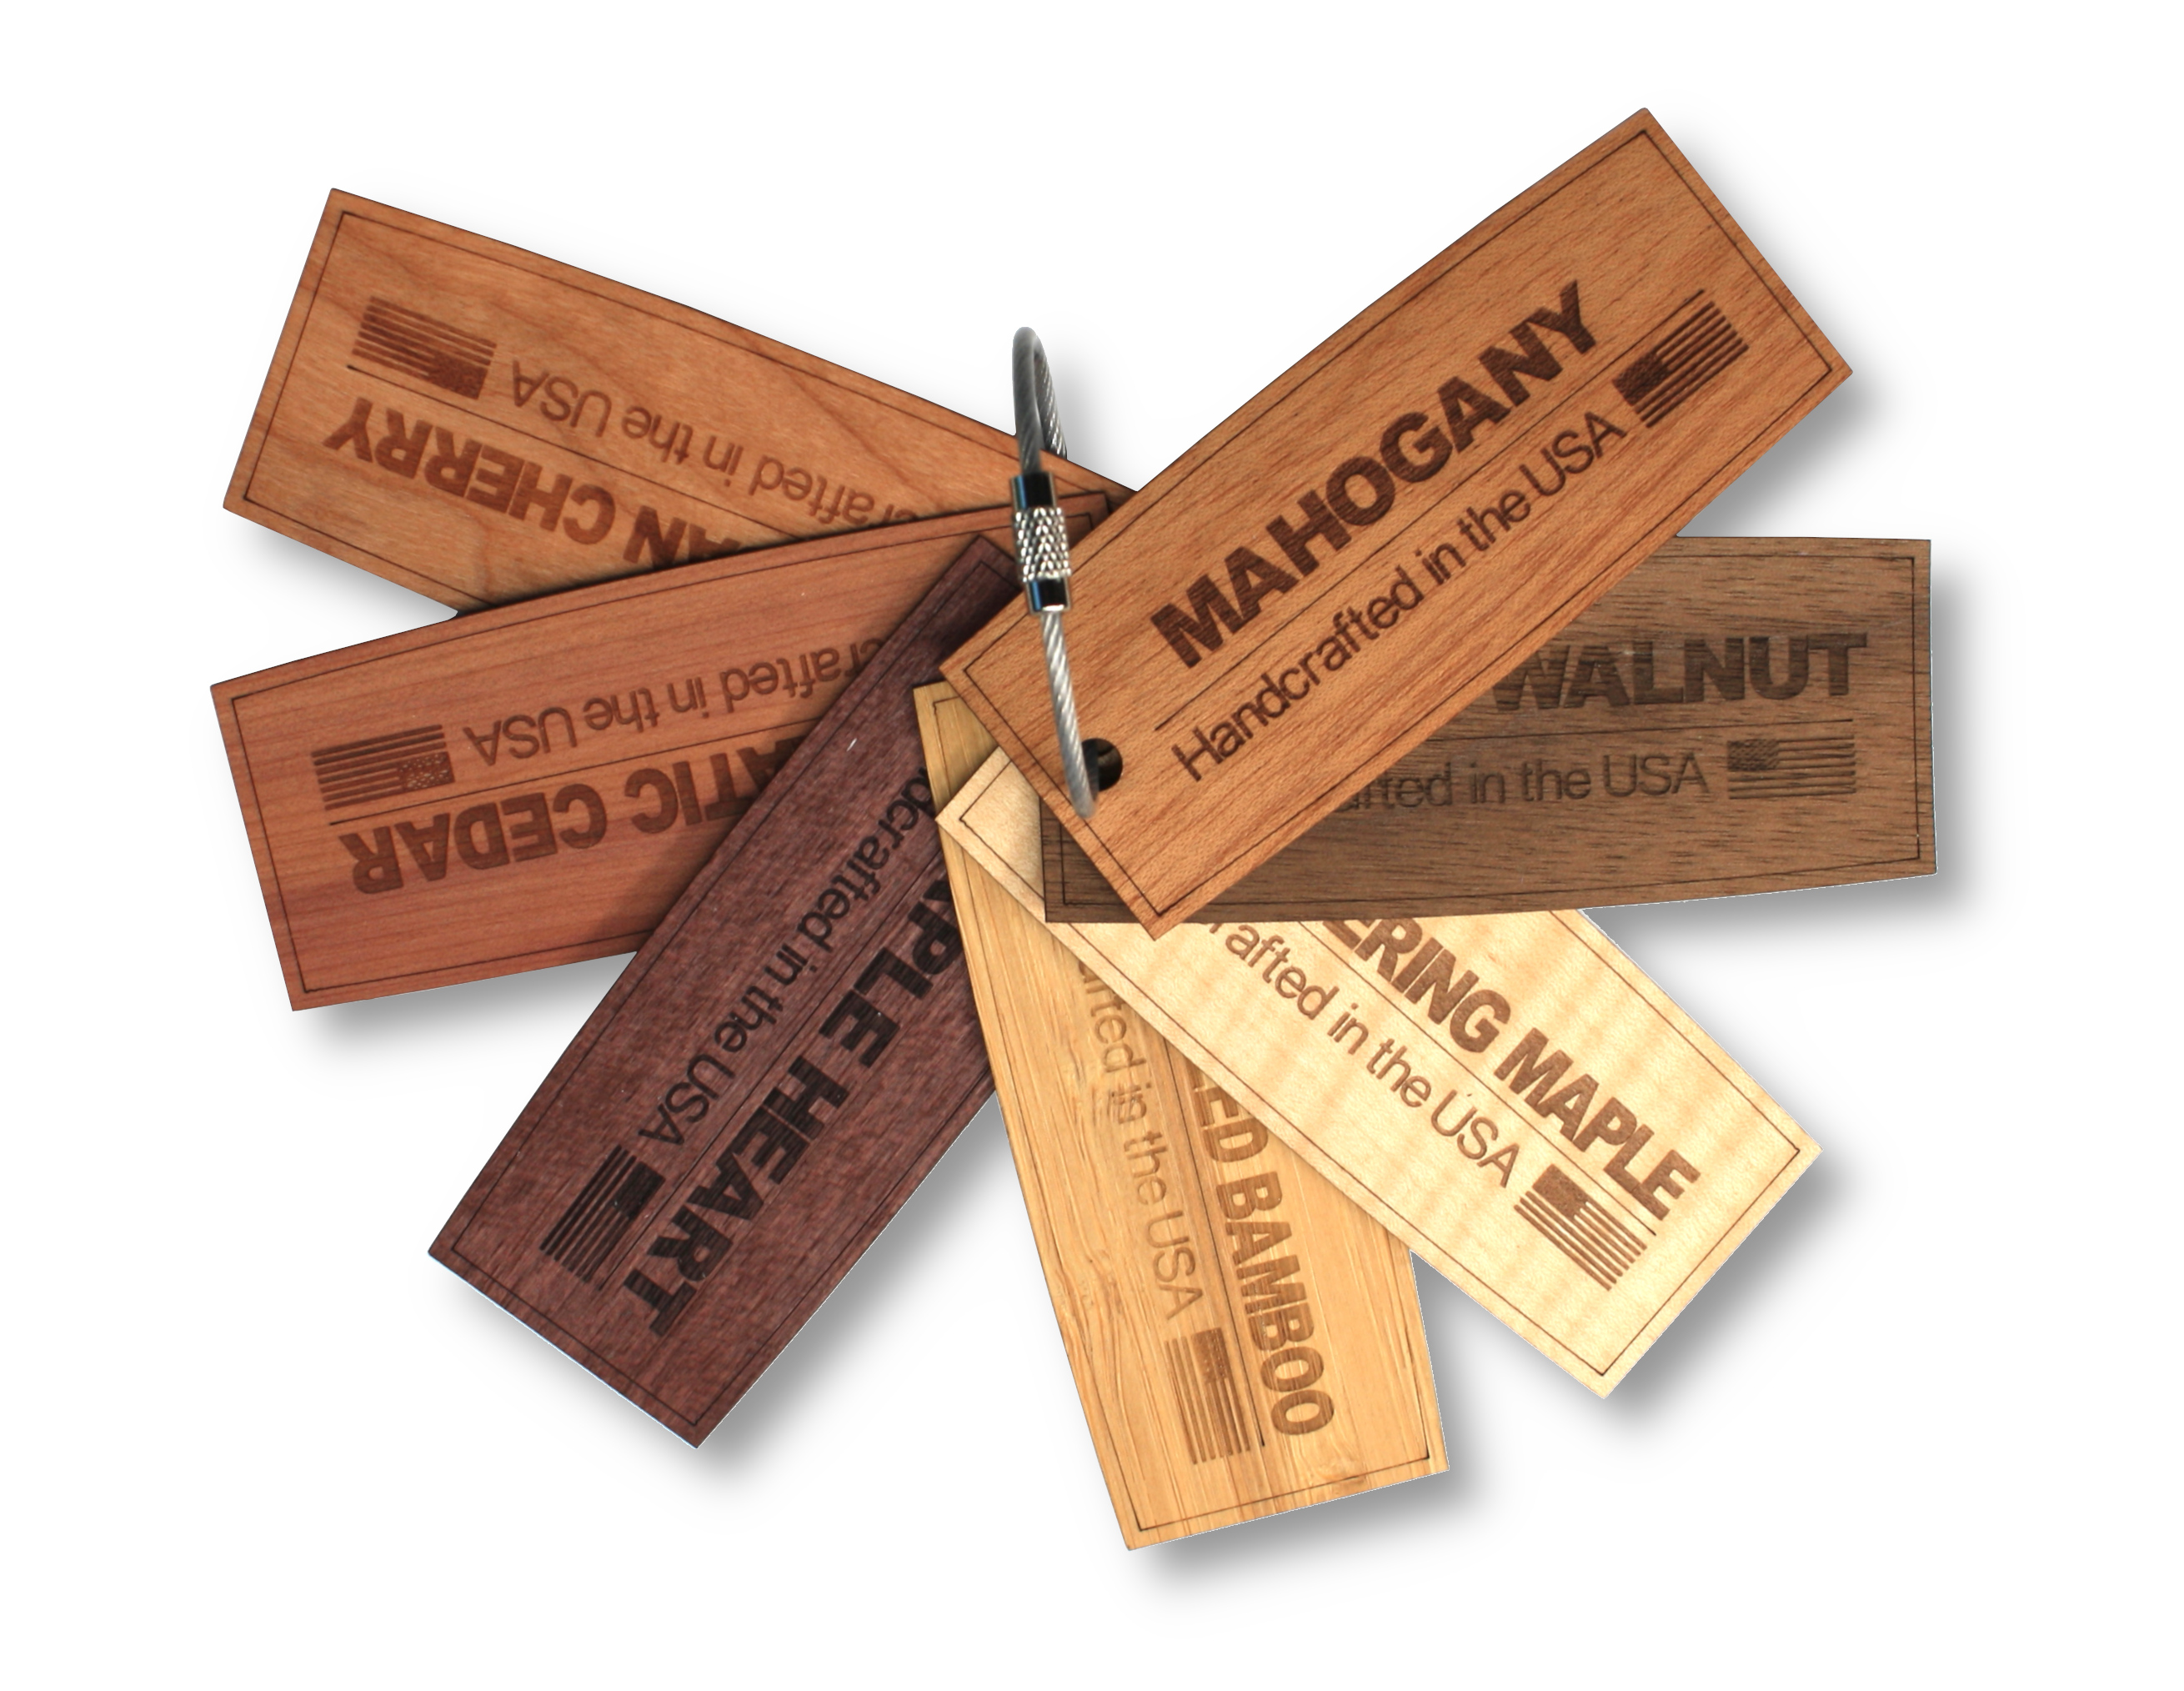 Free wood swatch for distributors